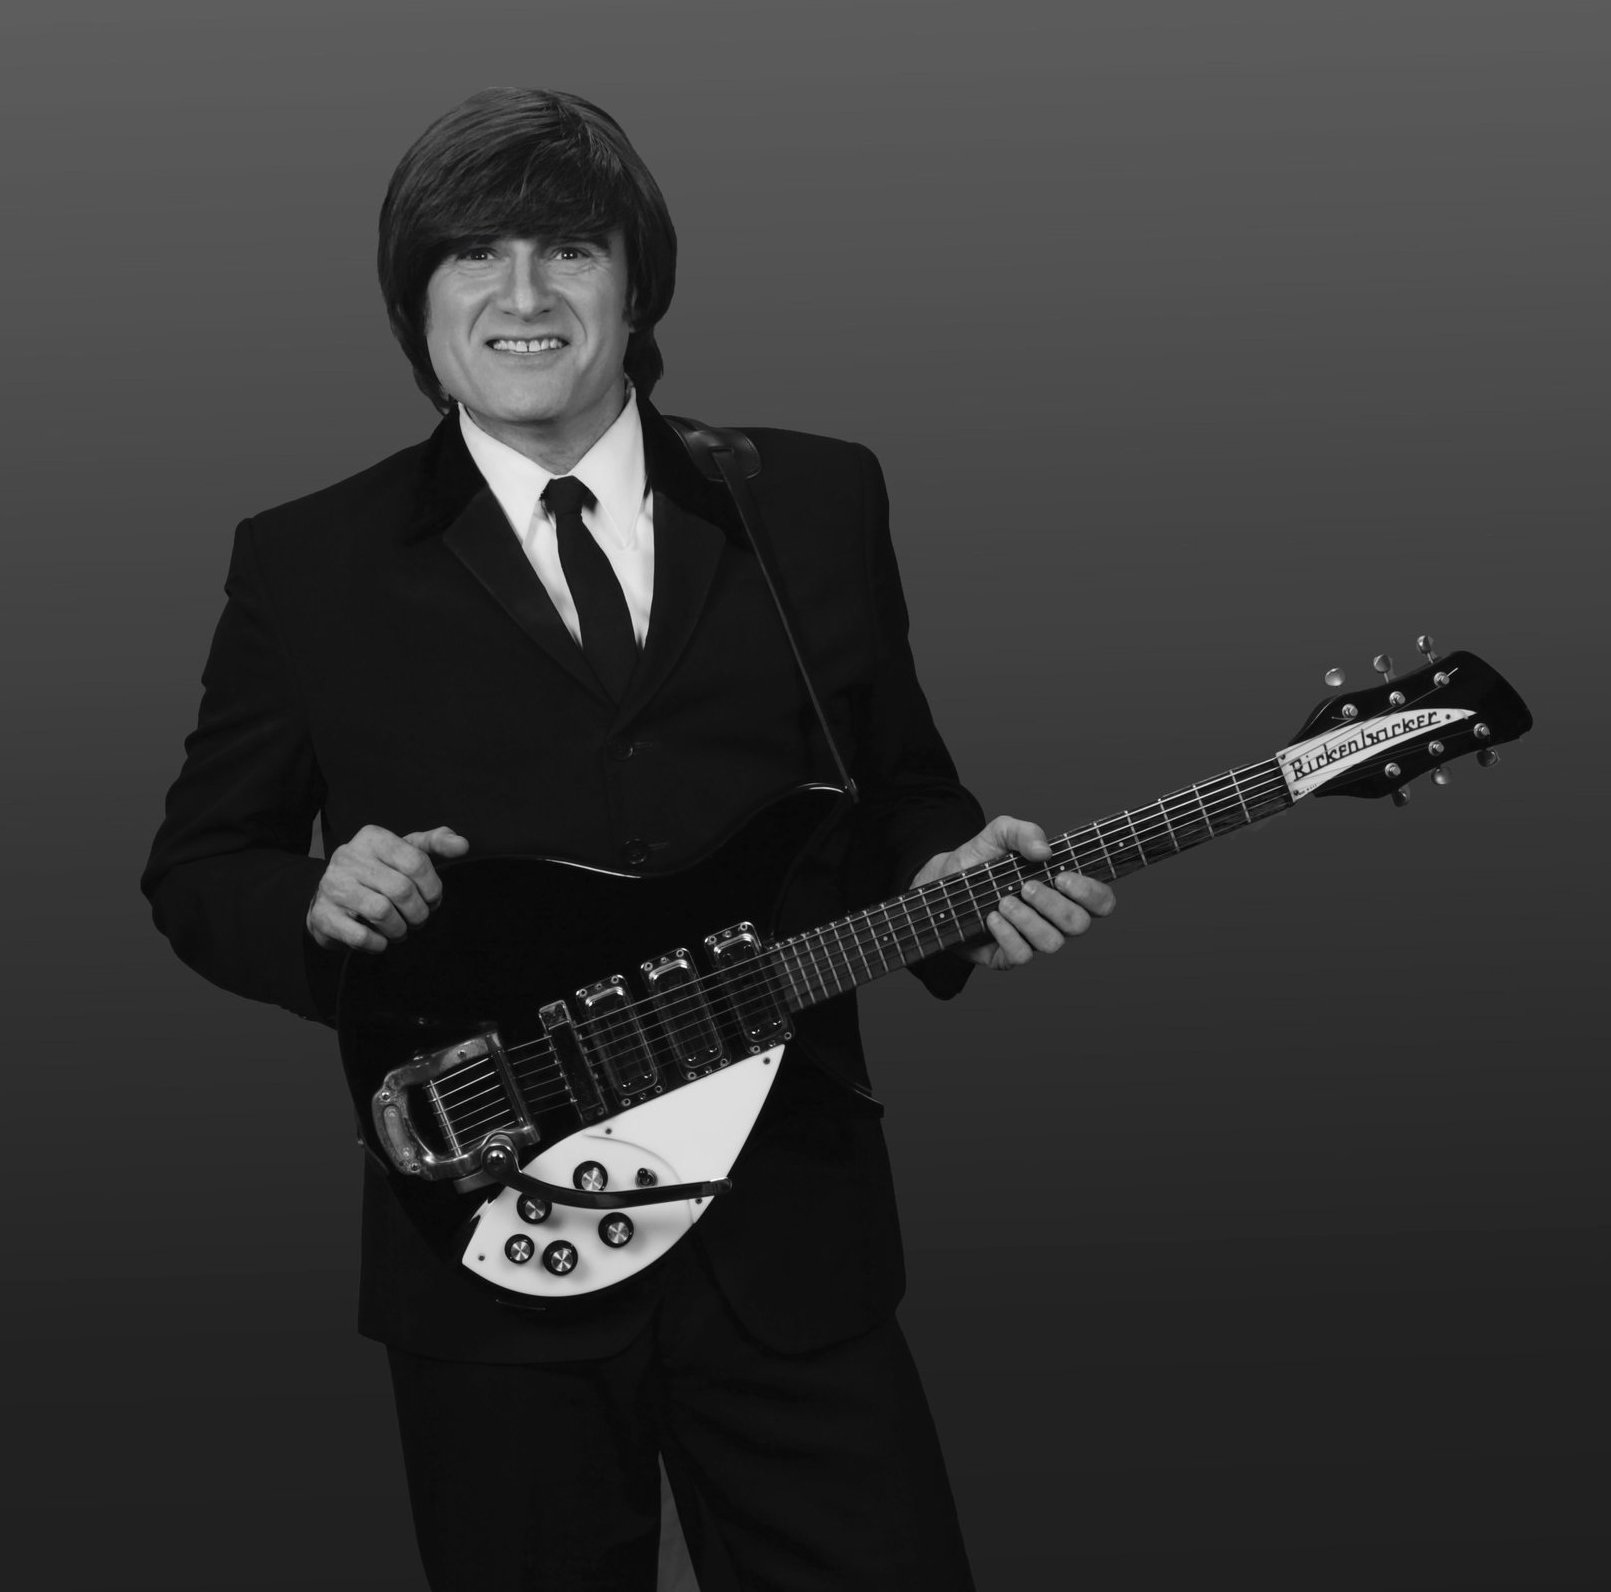 HOWARD PATTOW - John Lennon, portrayed by Howard Pattow, has toured with